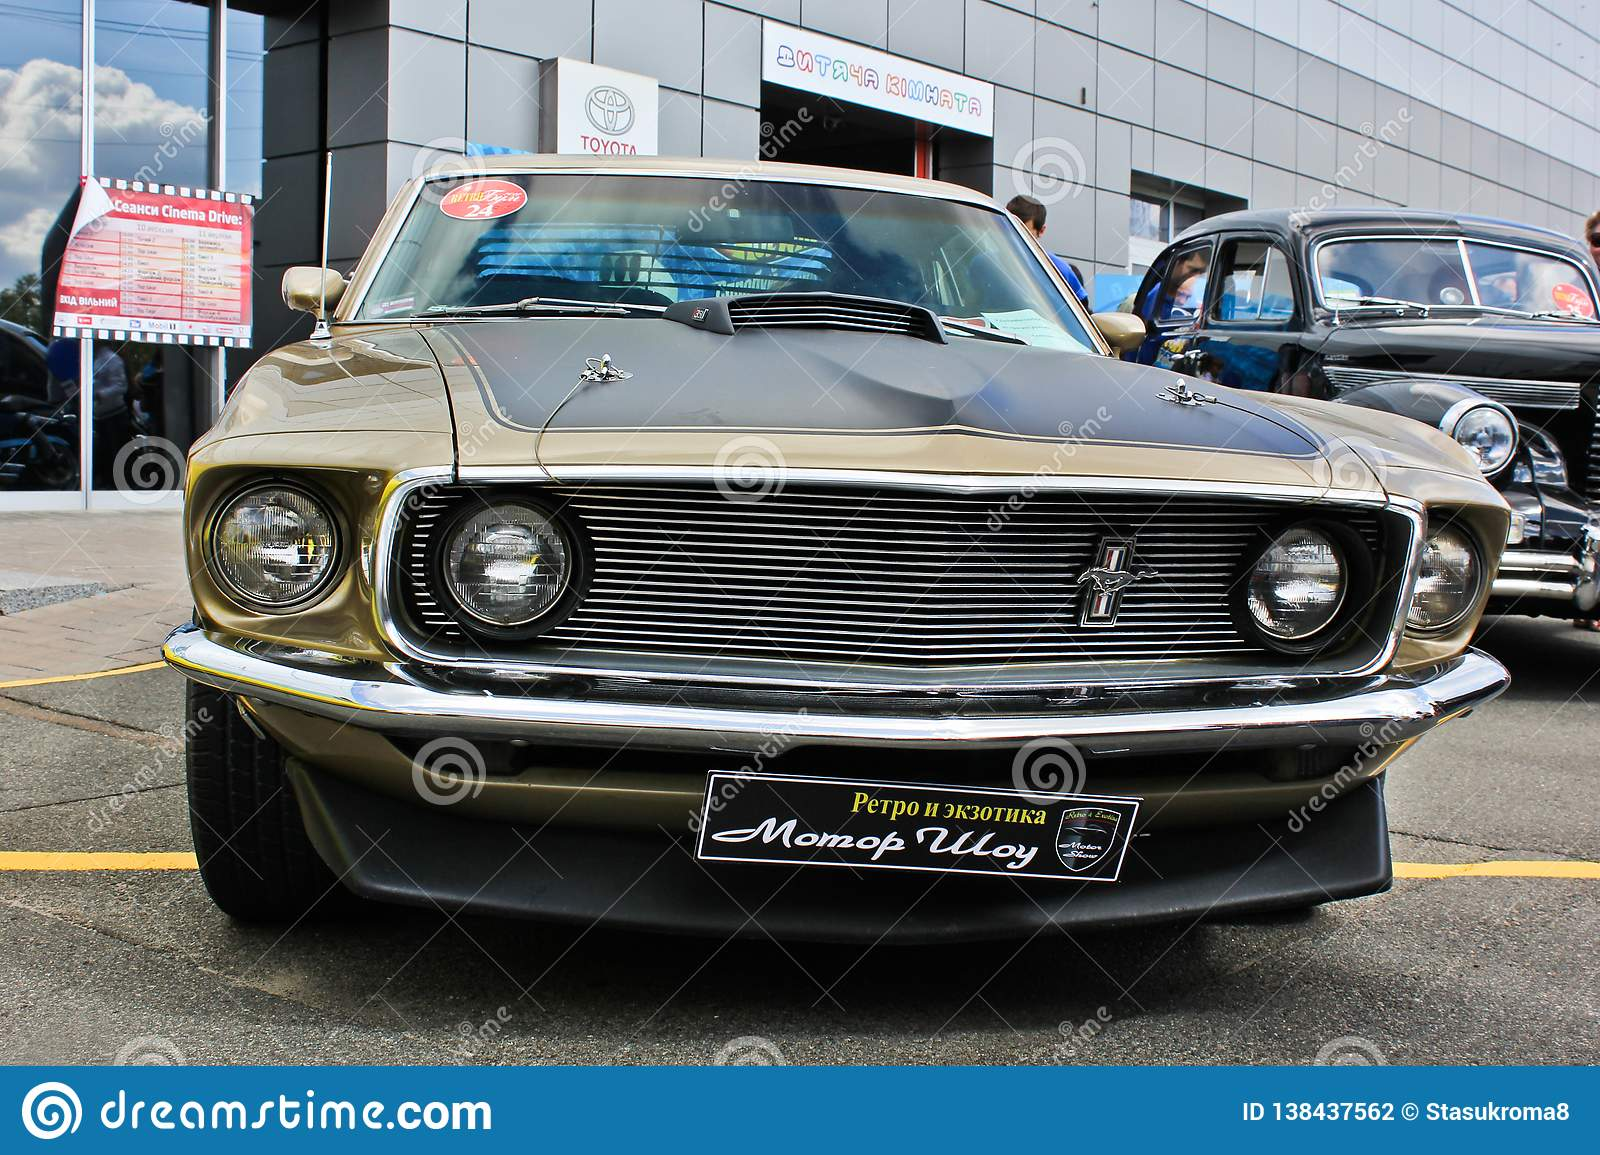 2018 Mustang Mach 1 >> Kiev Ukraine April 10 2018 Ford Mustang Mach 1 1969